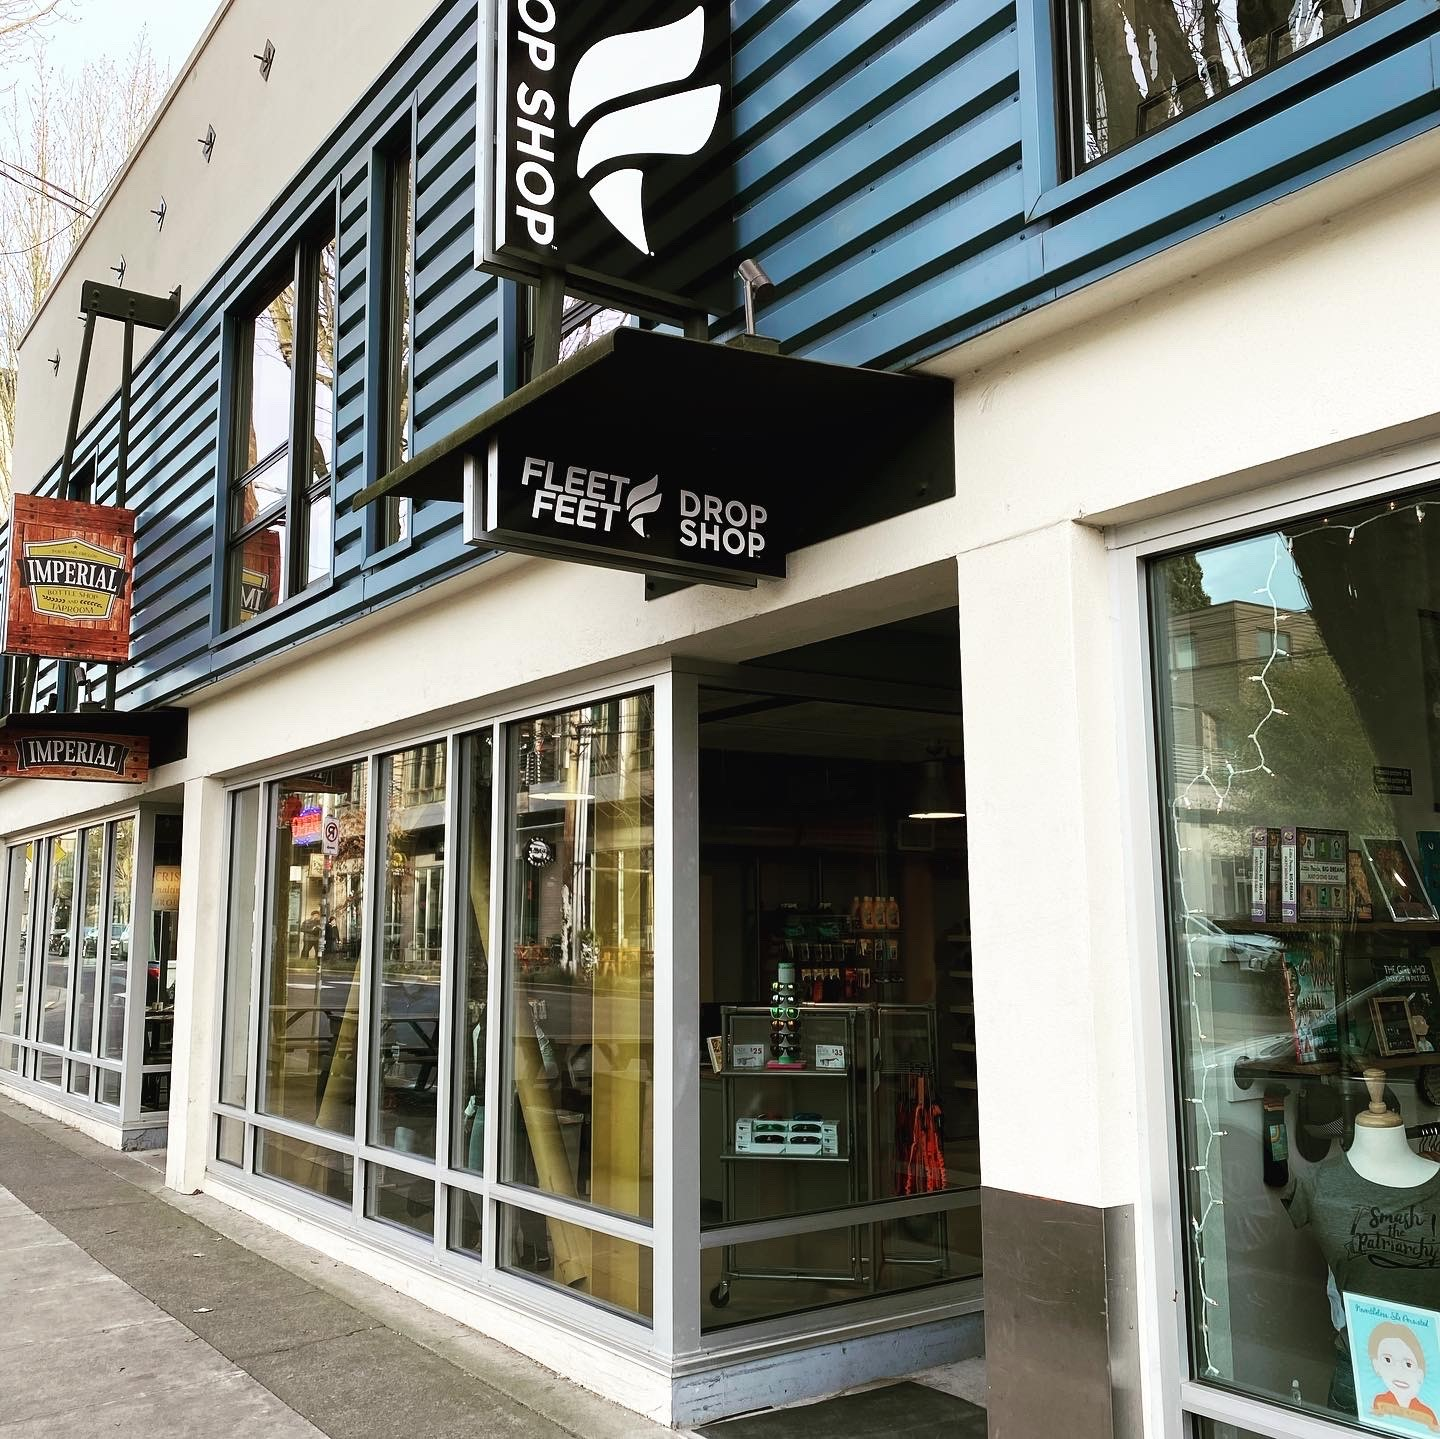 Portland, Ore.'s Fleet Feet Drop Shop retail concept has no inventory but offers 3D foot scanning technology and free two-day shipping.